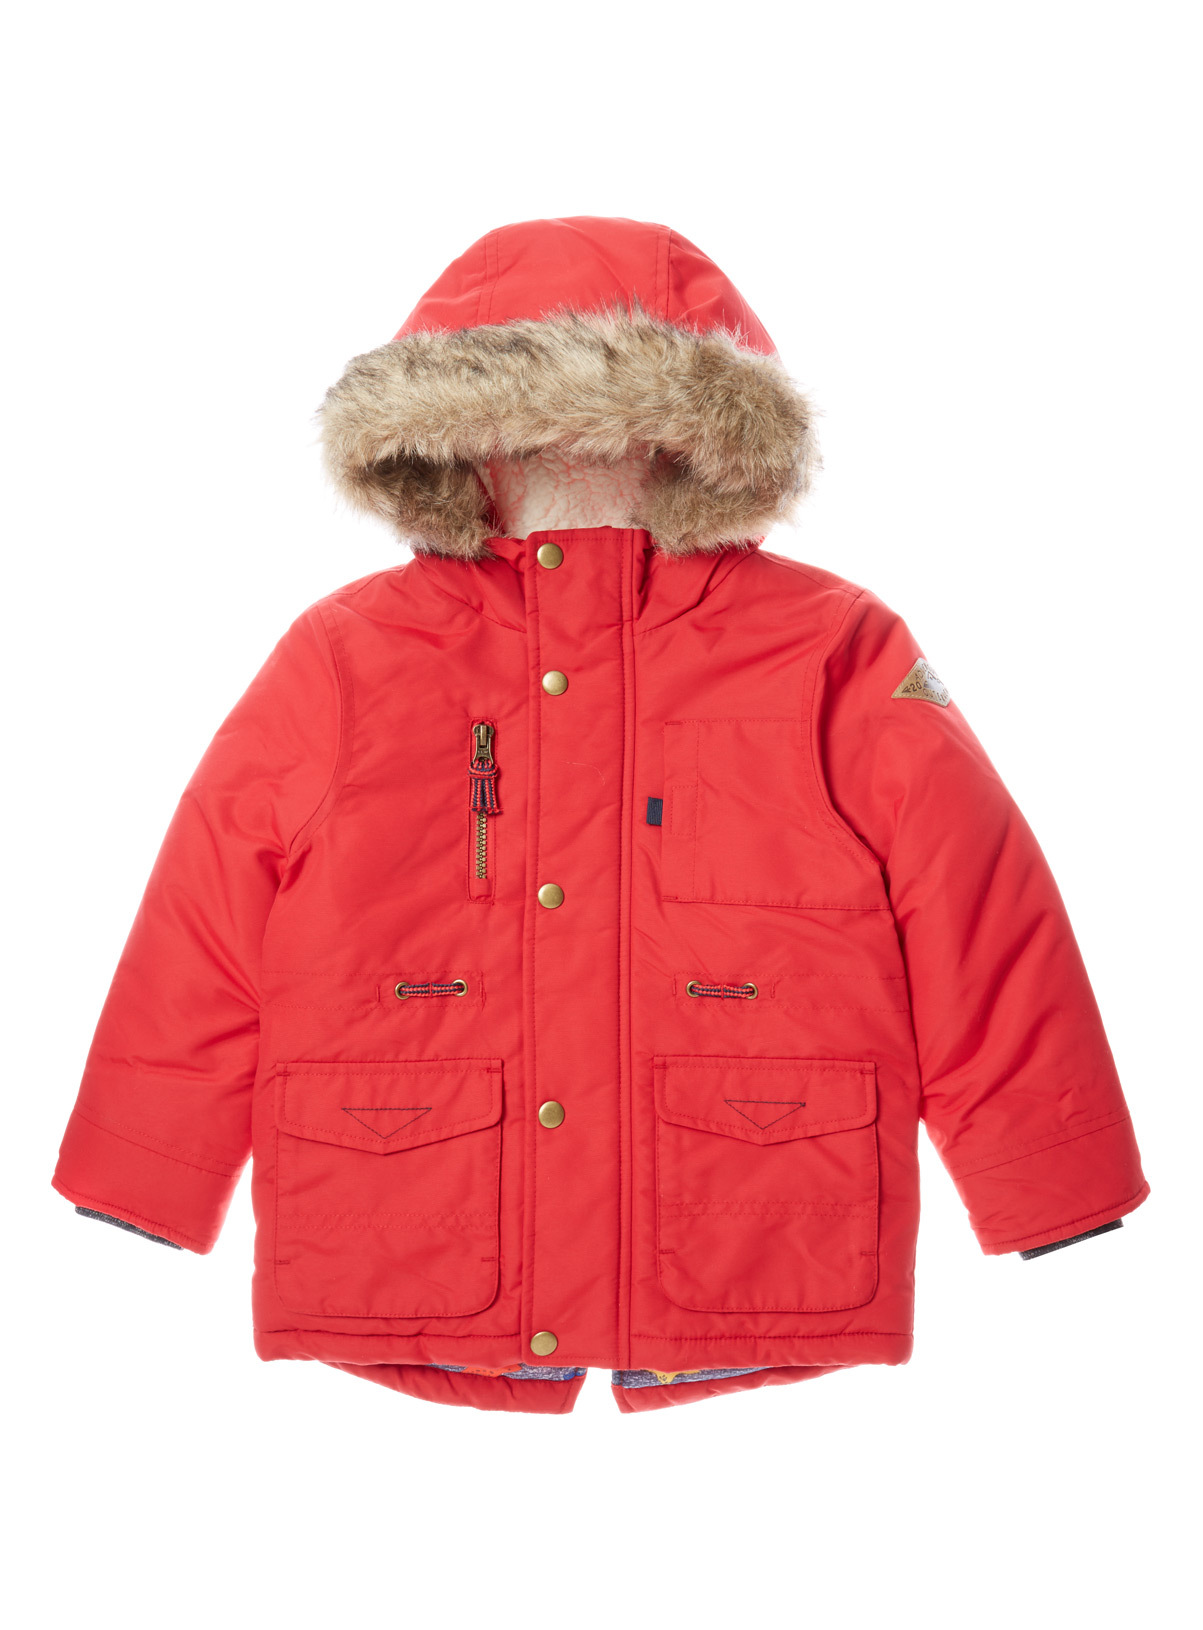 Kids Red Parka Jacket (9 months-6 years) | Tu clothing